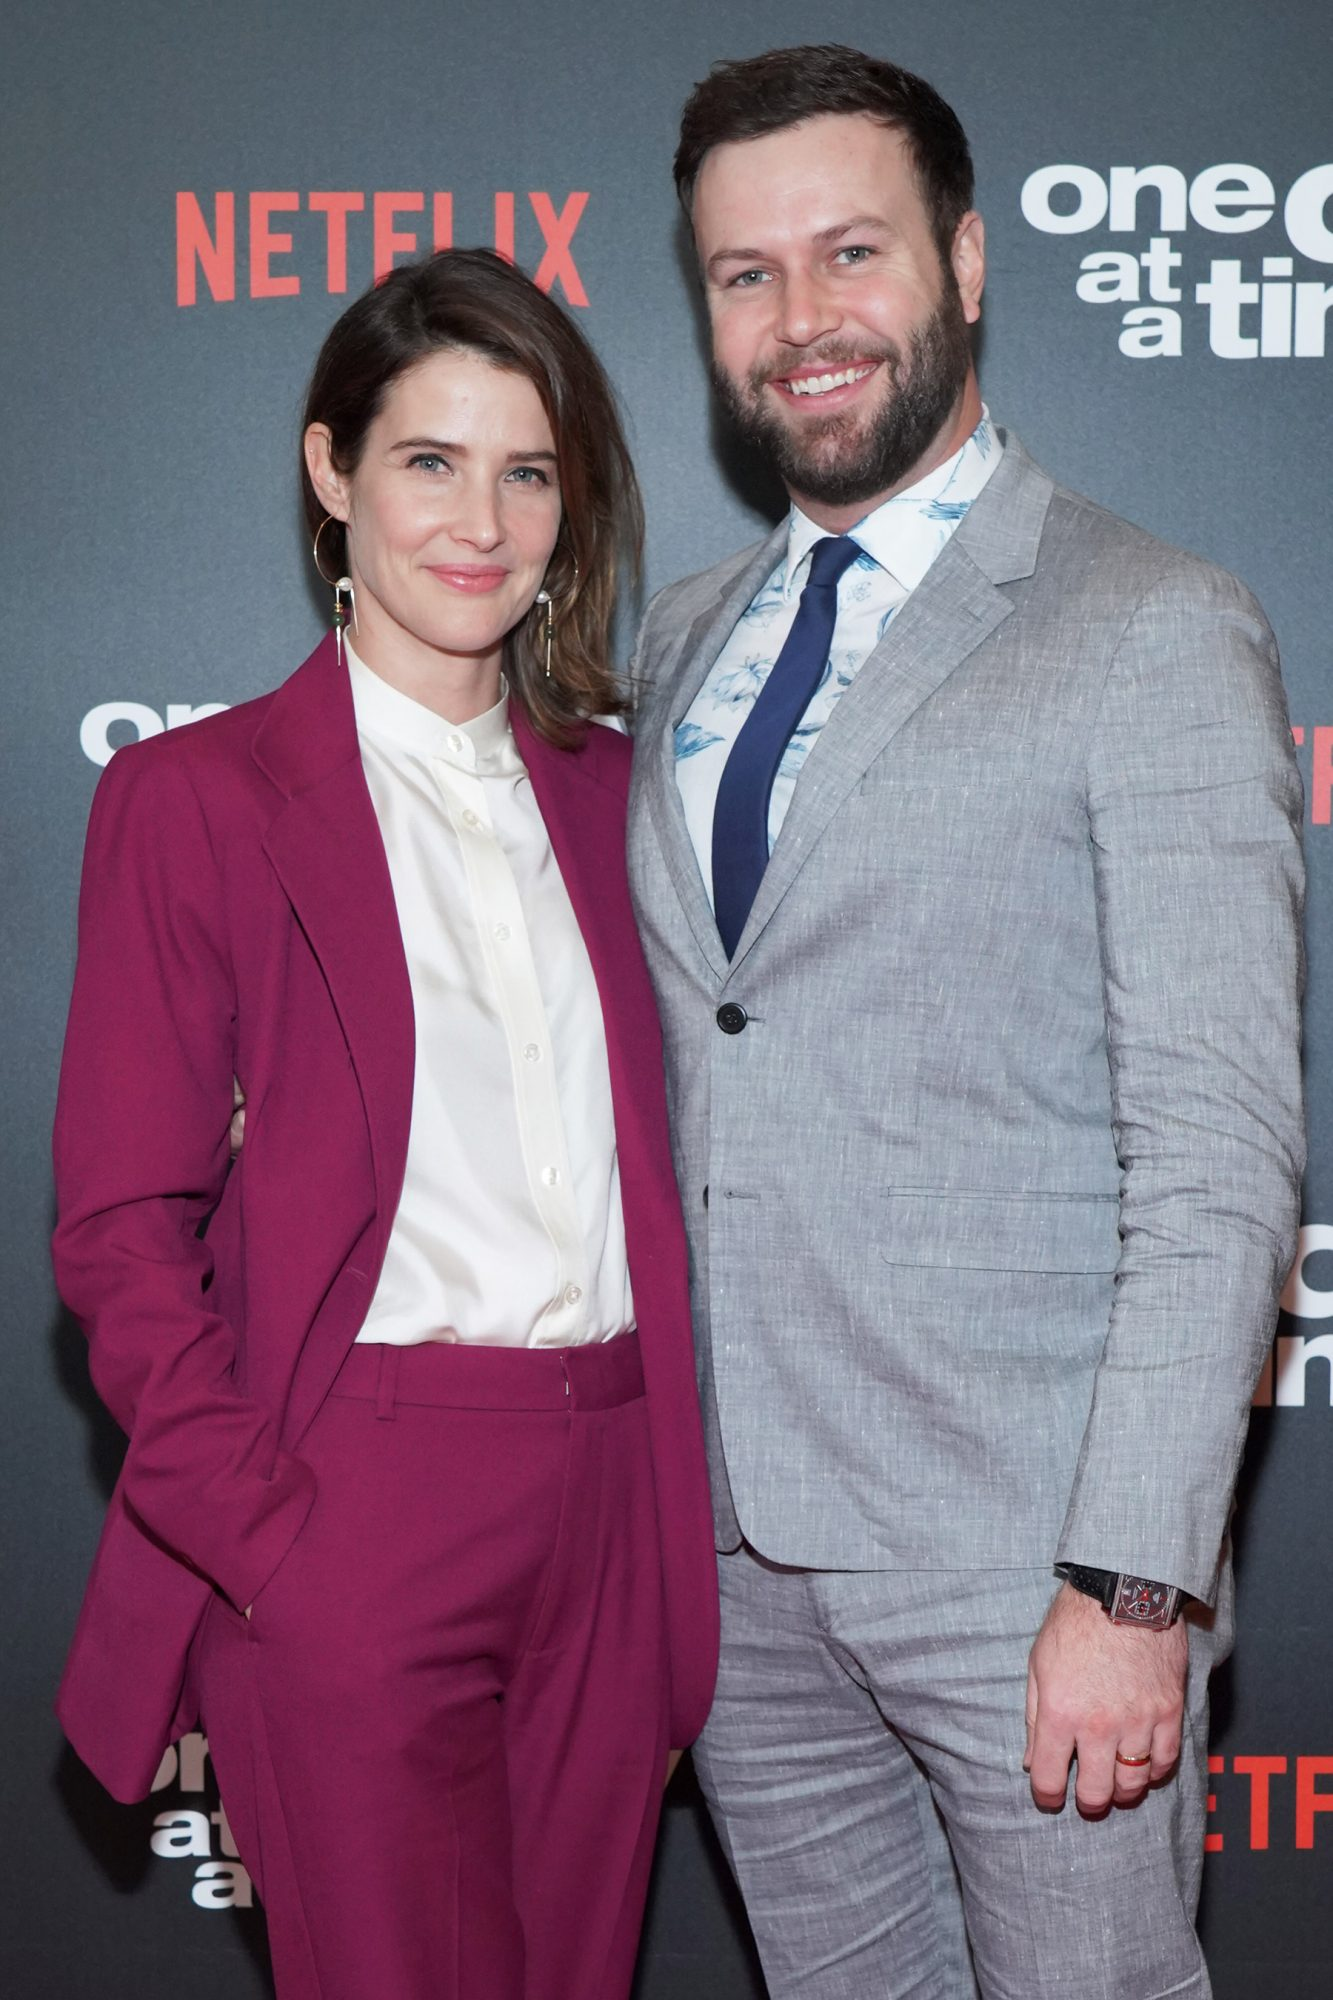 """Premiere Of Netflix's """"One Day At A Time"""" Season 3 - Arrivals"""